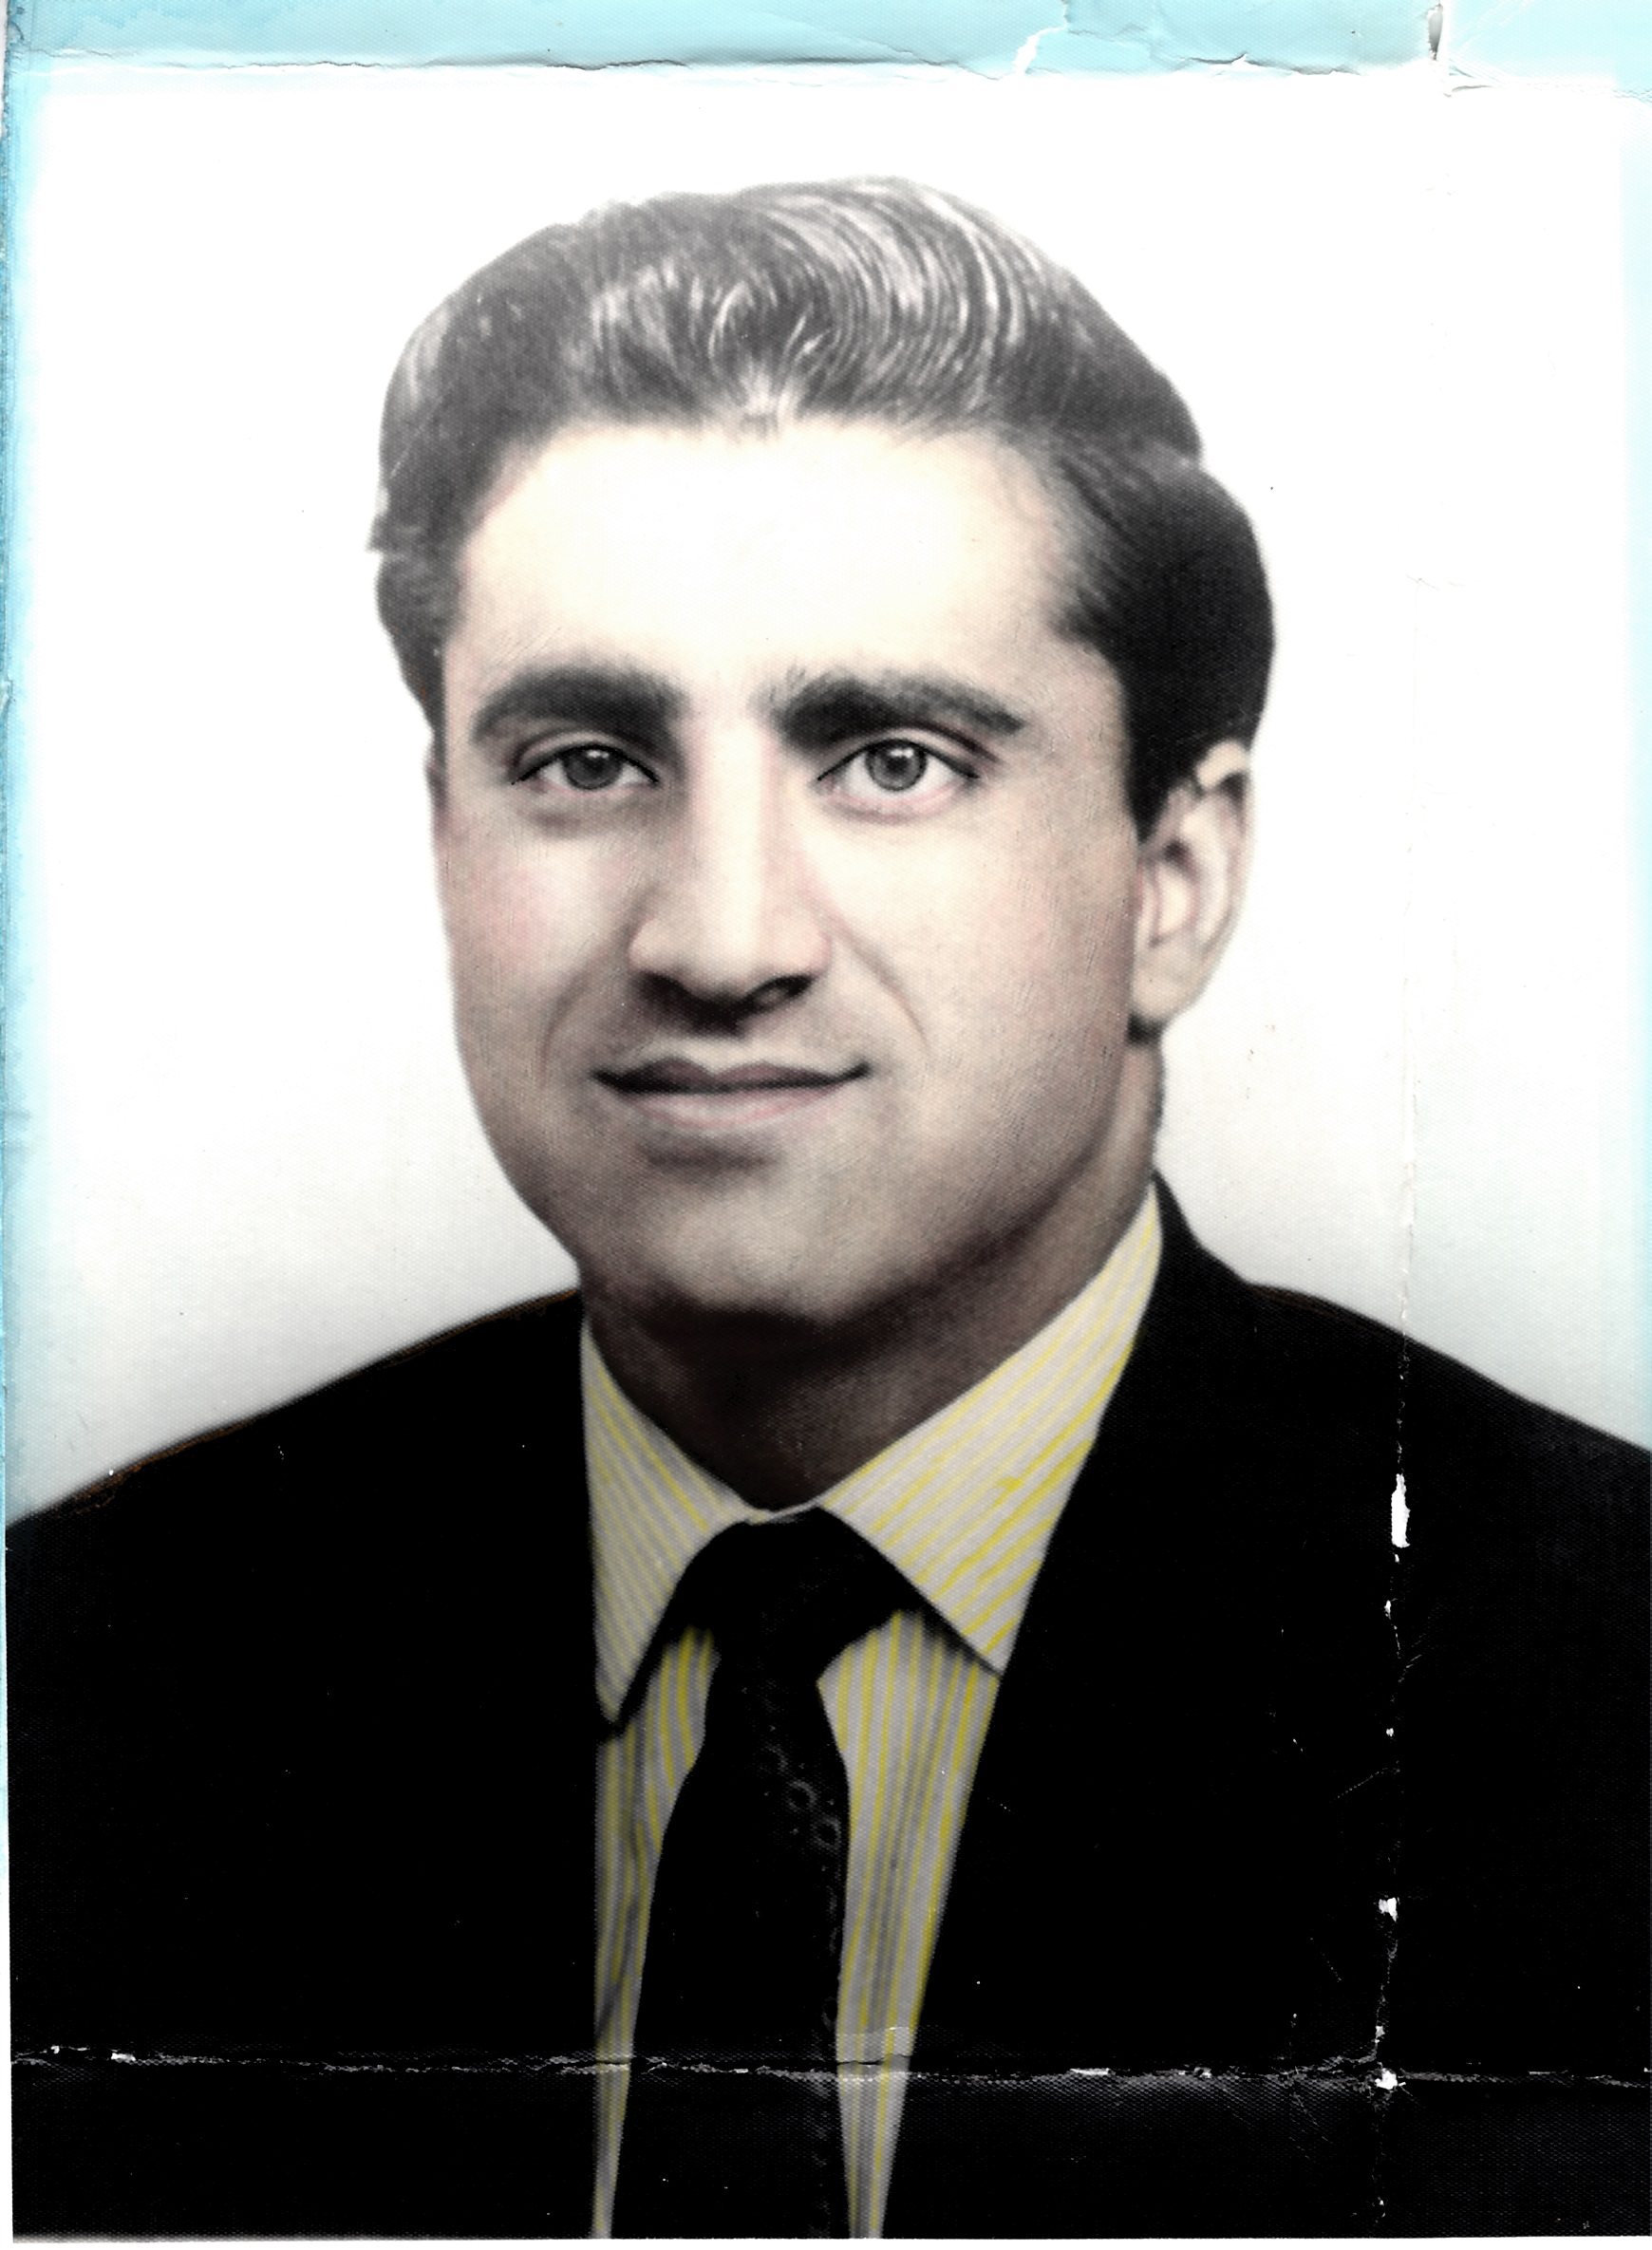 Portrait of Mr Hanif in the 1960s. Redding collection, Rugby Art Gallery and Museum.